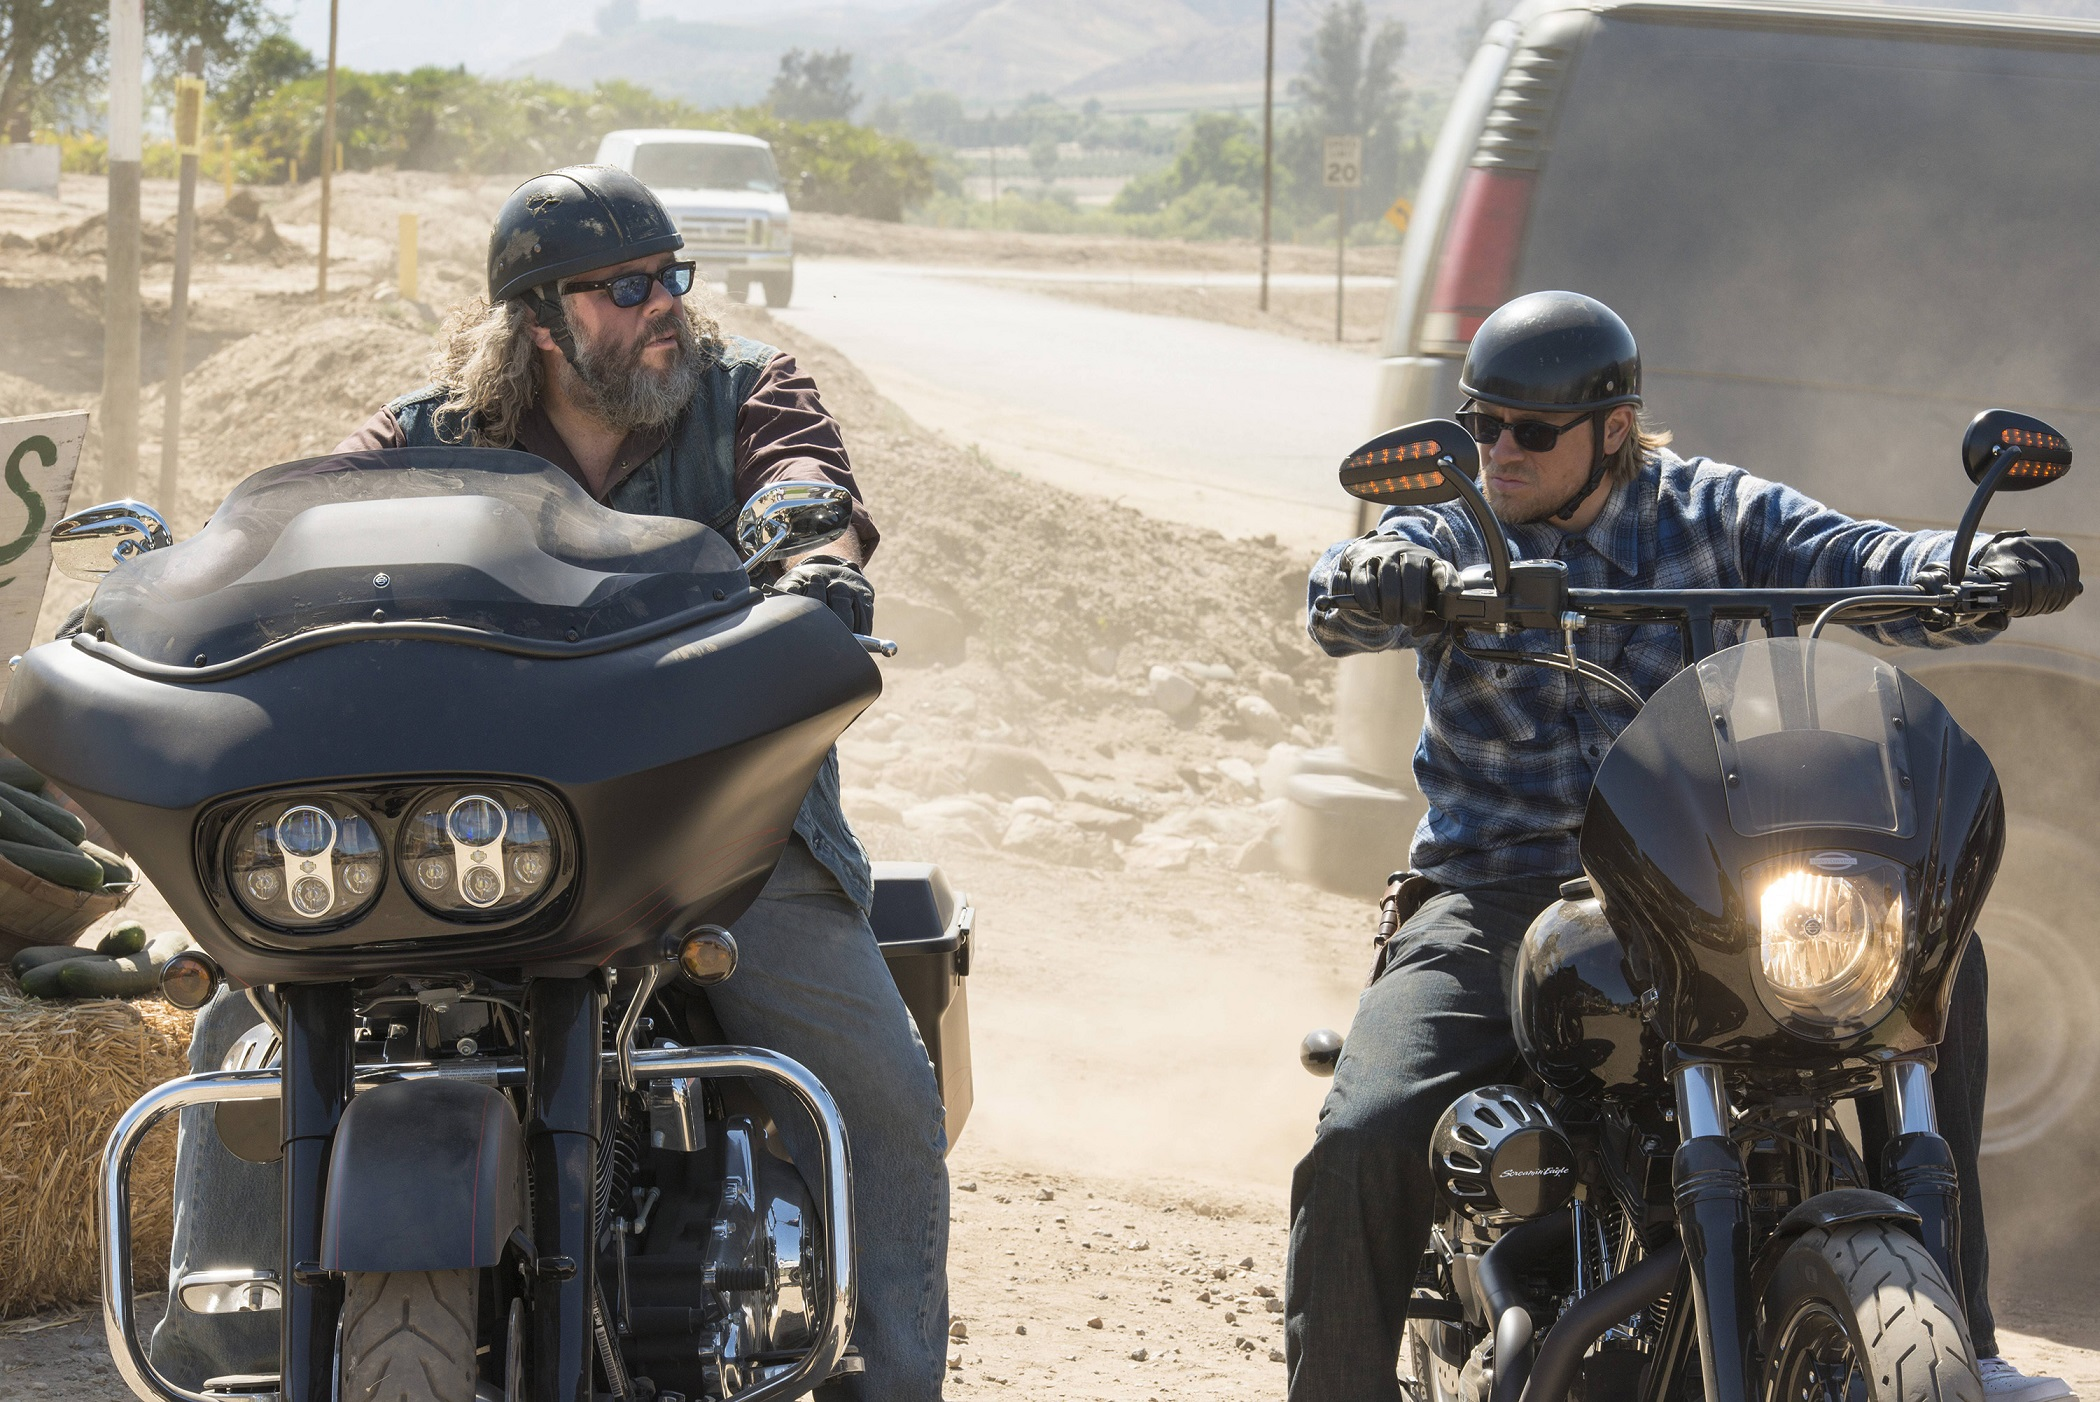 Bad news for fans of the hugely popular 'Sons of Anarchy' series